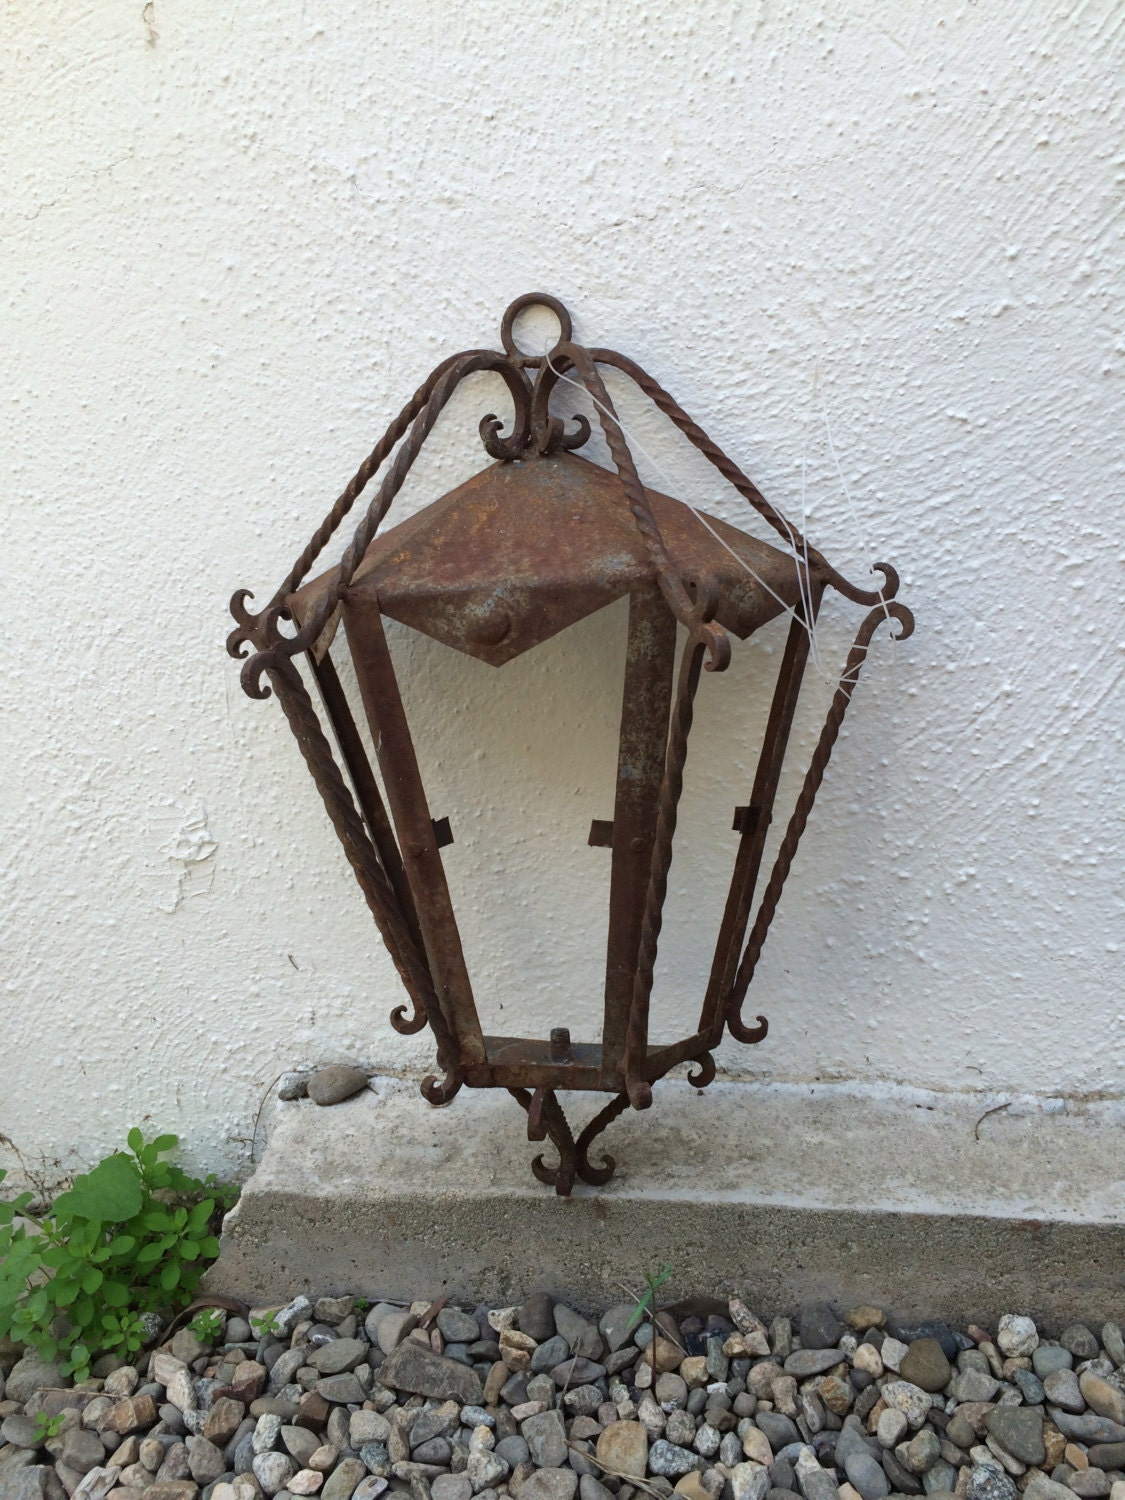 Antique Wall Sconce Outdoor Lighting Spanish Revival Wrought